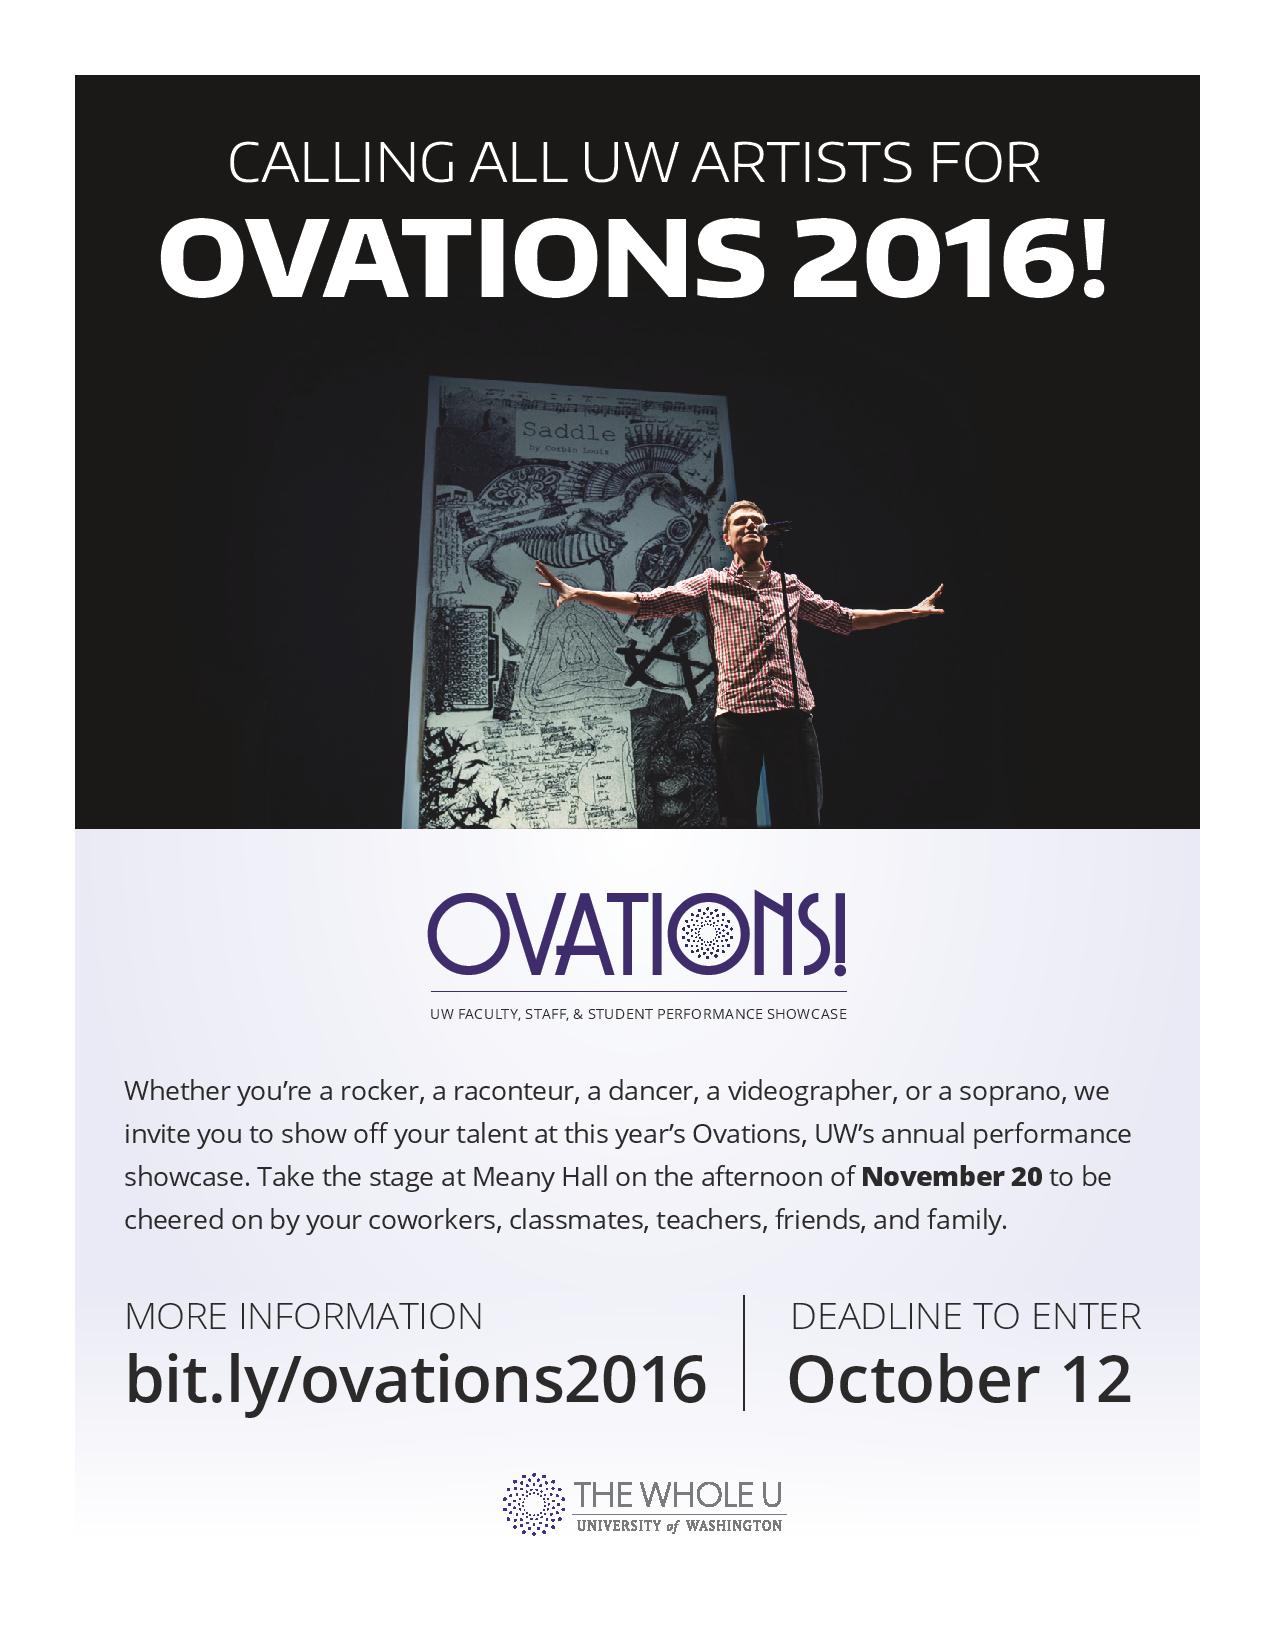 OVATIONS RECRUITING PERFORMERS FLYER-page-001